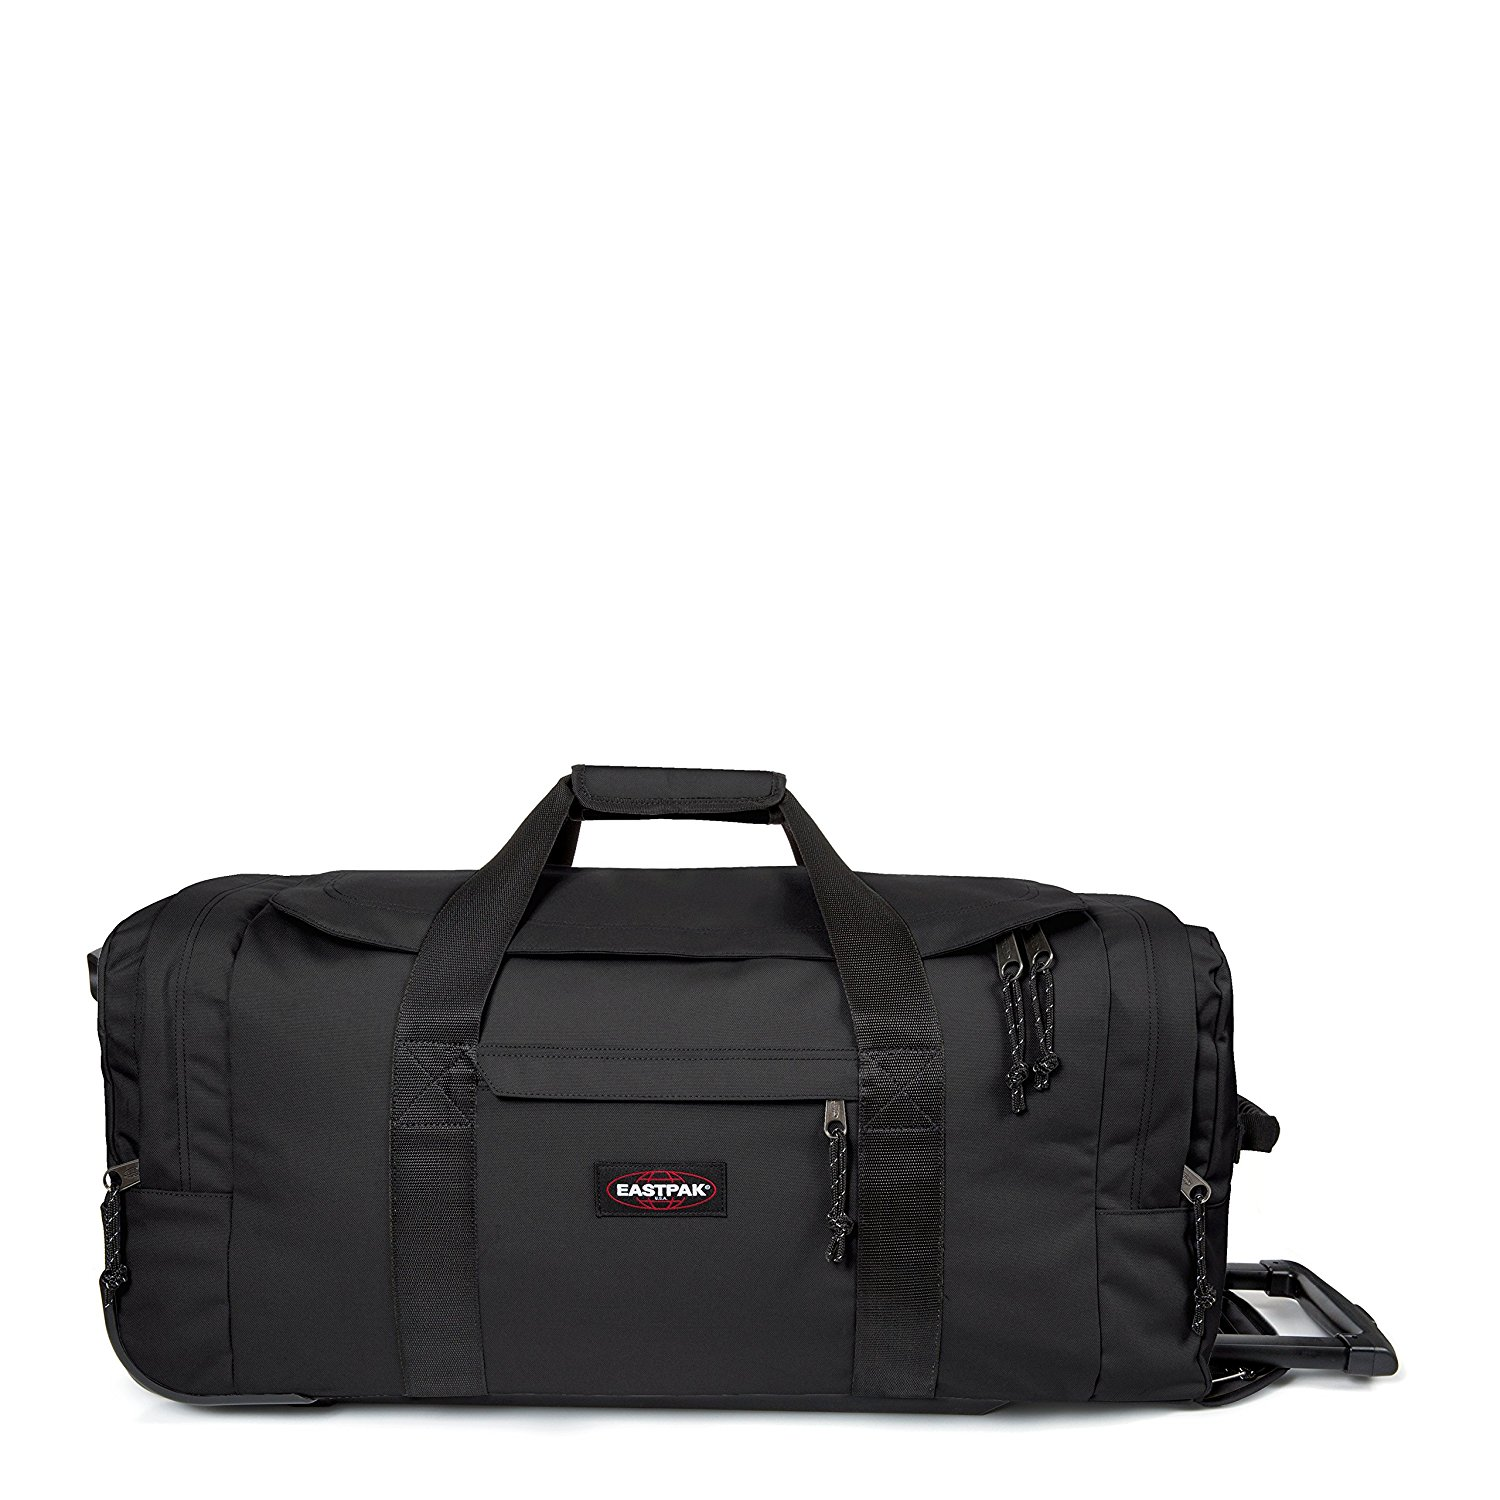 Eastpak Reisetasche amazon